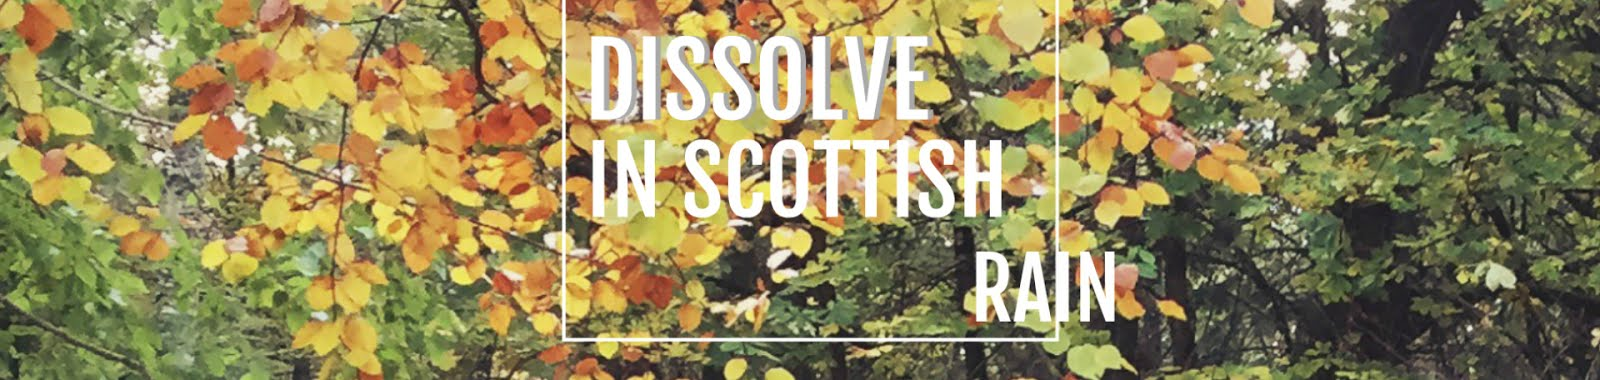 Dissolve in Scottish Rain